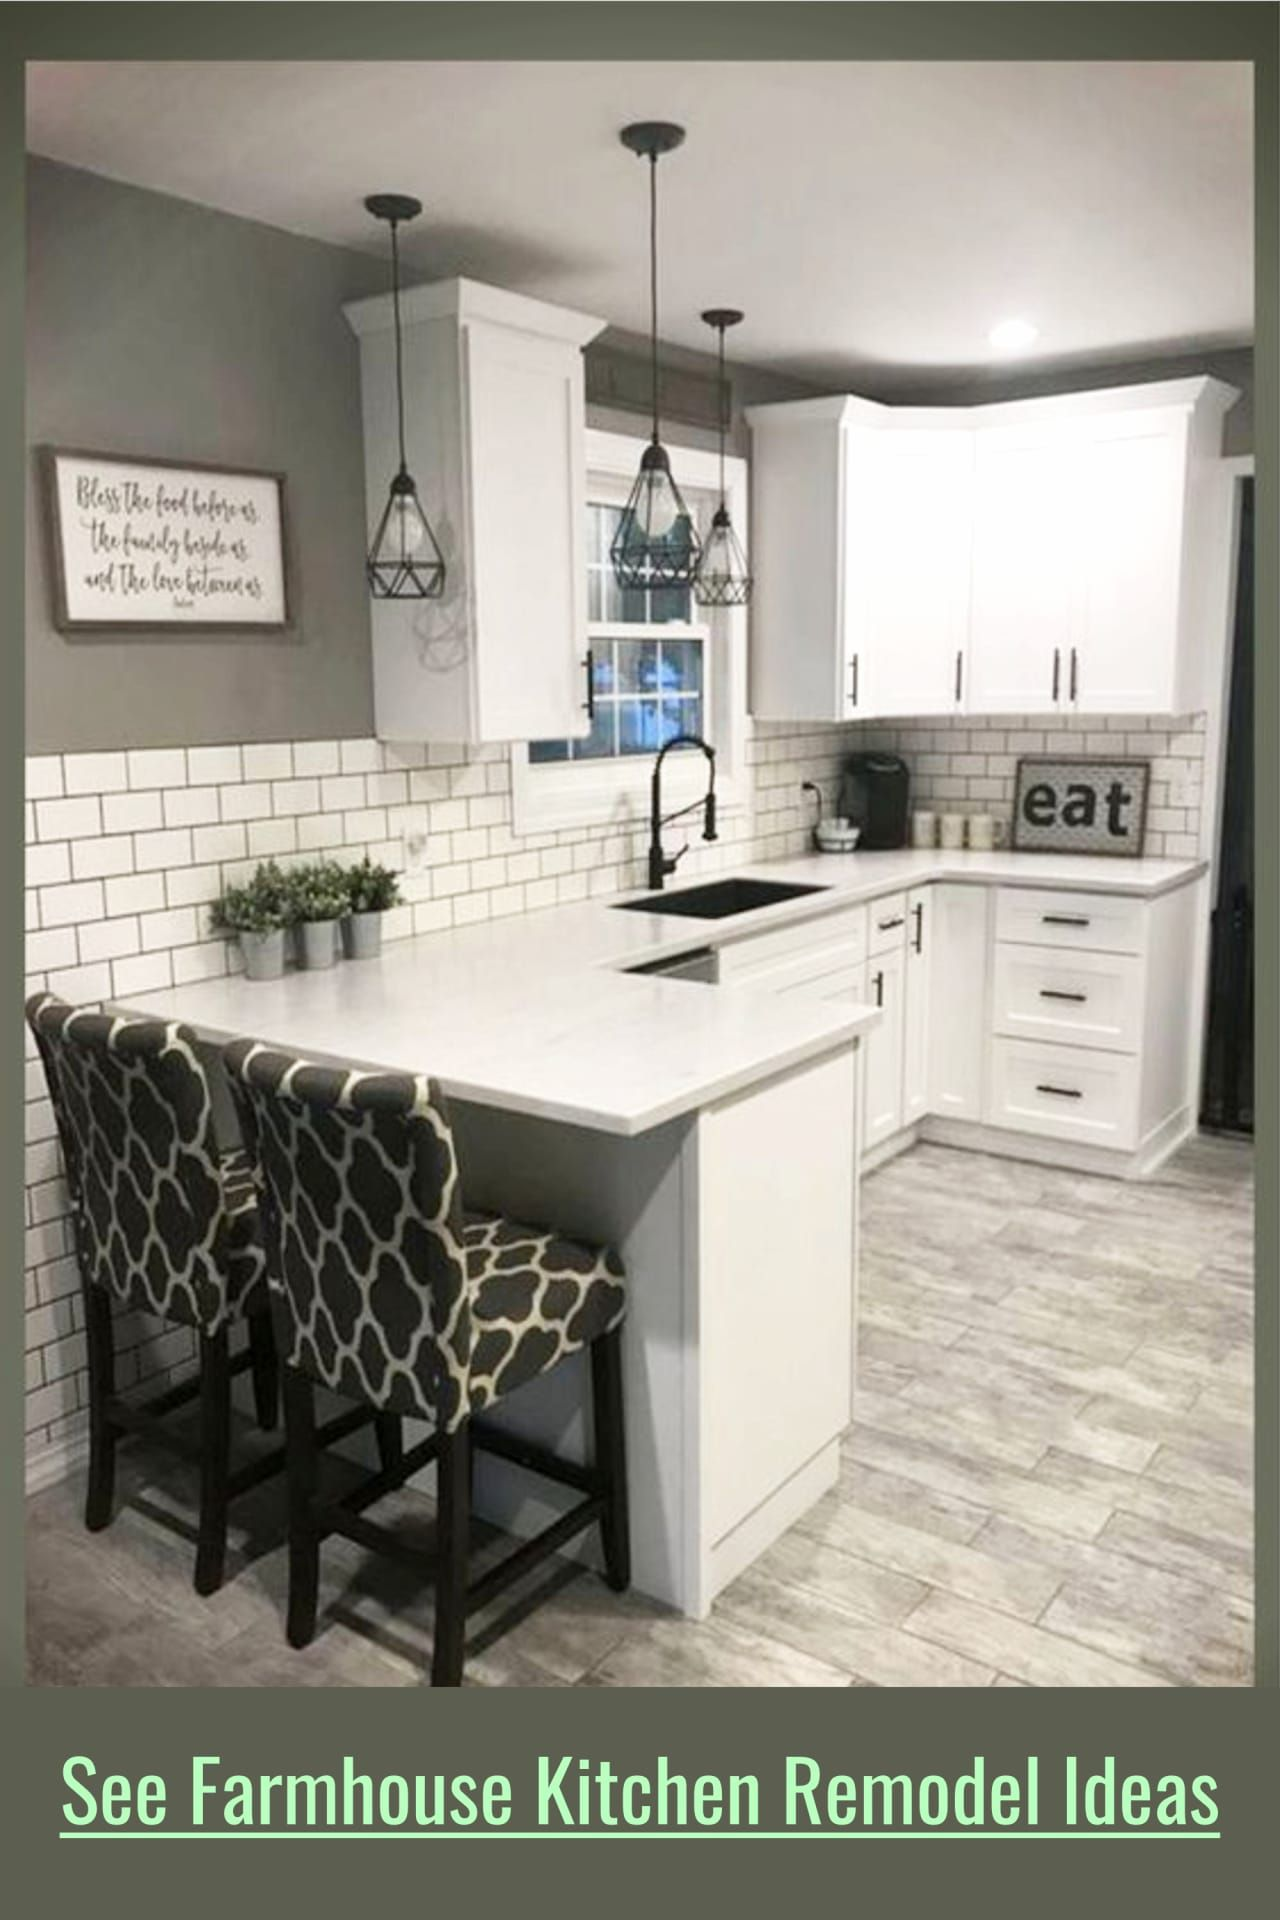 Small Kitchen Ideas On A Budget Before After Remodel Pictures Of Tiny Kitchens Clever Diy Ideas Diy Kitchen Remodel Kitchen Remodel Small Country Kitchen Farmhouse